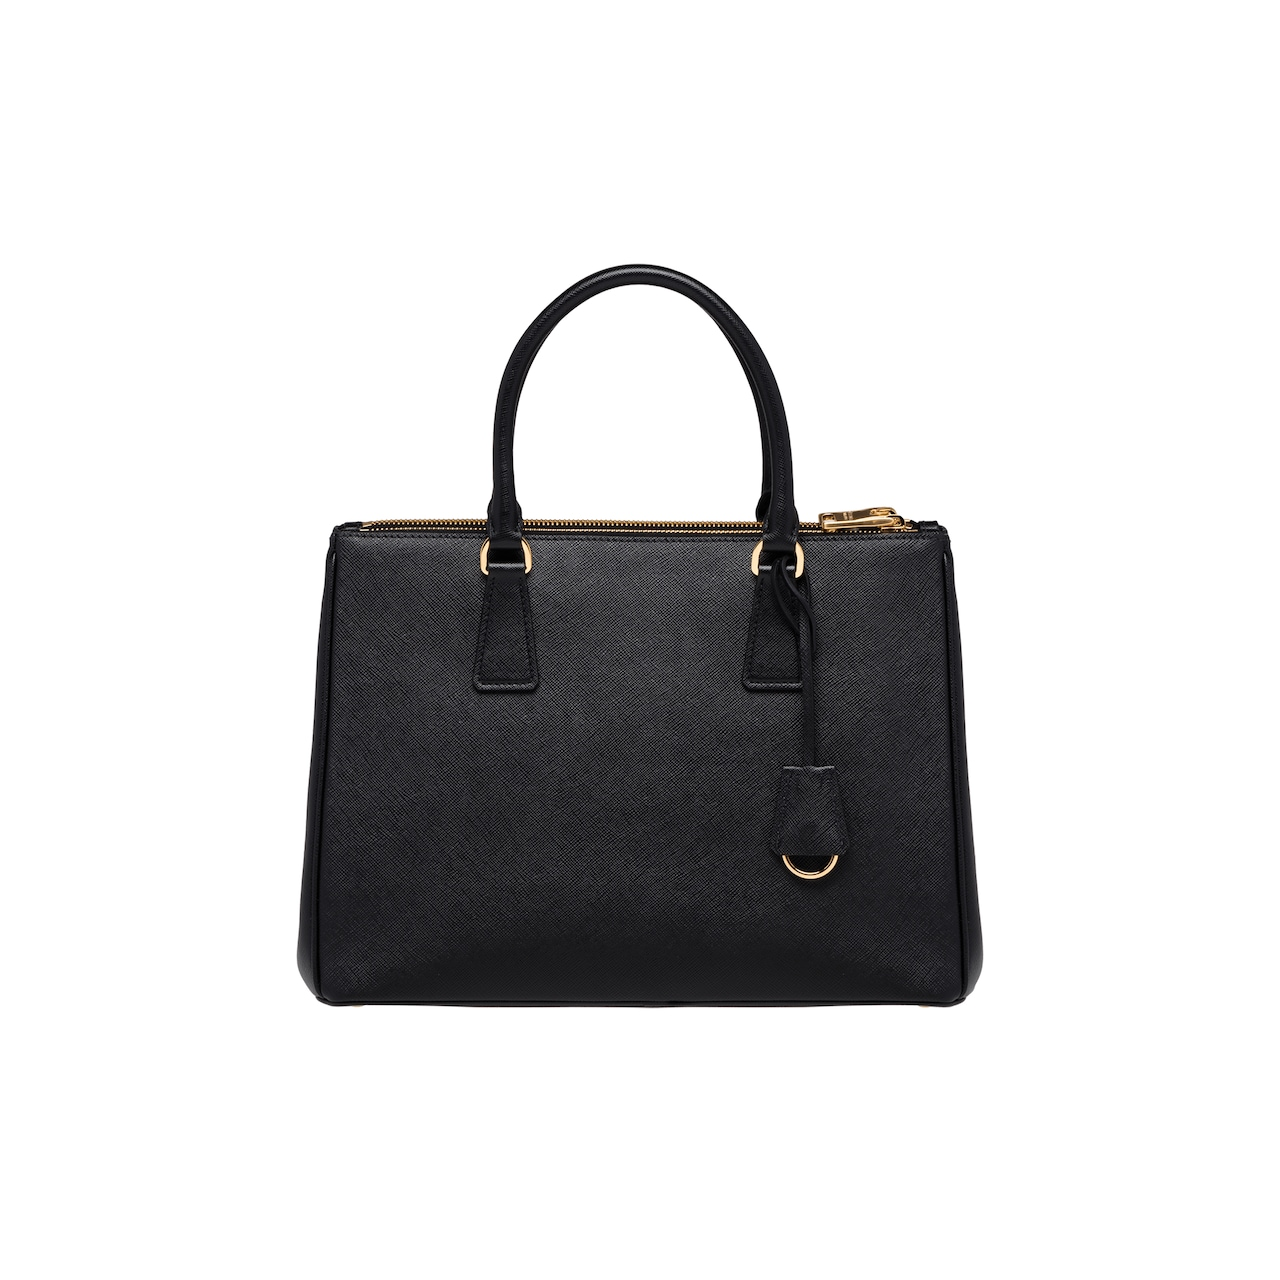 Prada Prada Galleria Medium Saffiano Leather Bag 4